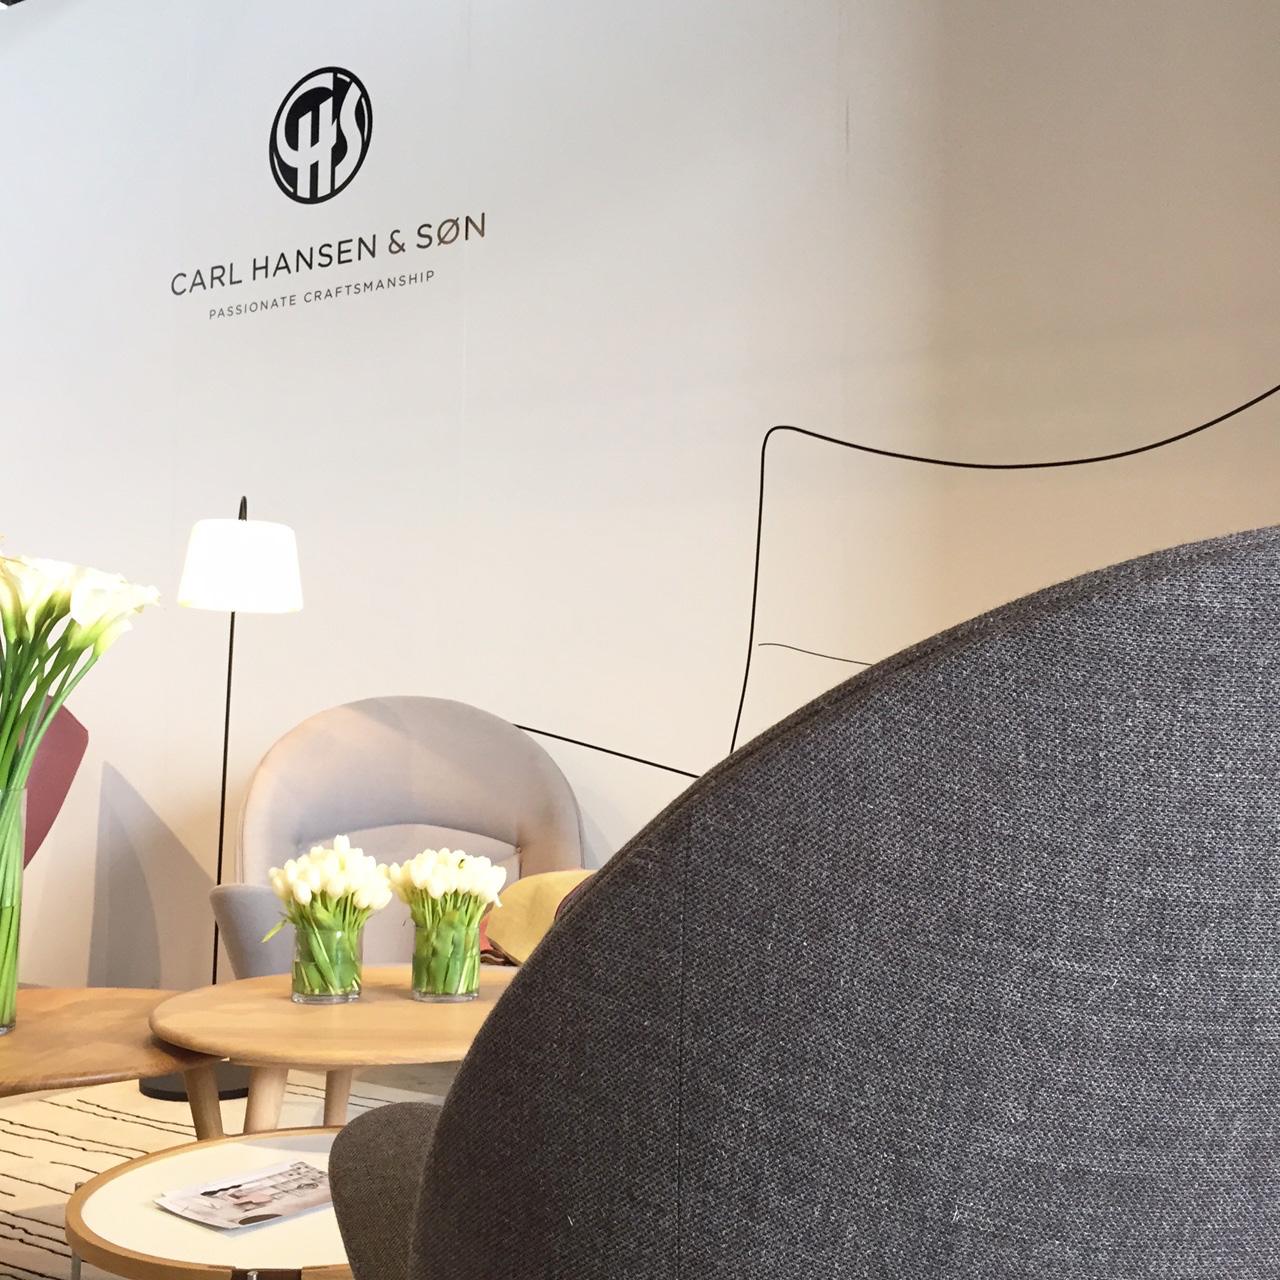 Carl Hansen & Son at WestEdge 2015